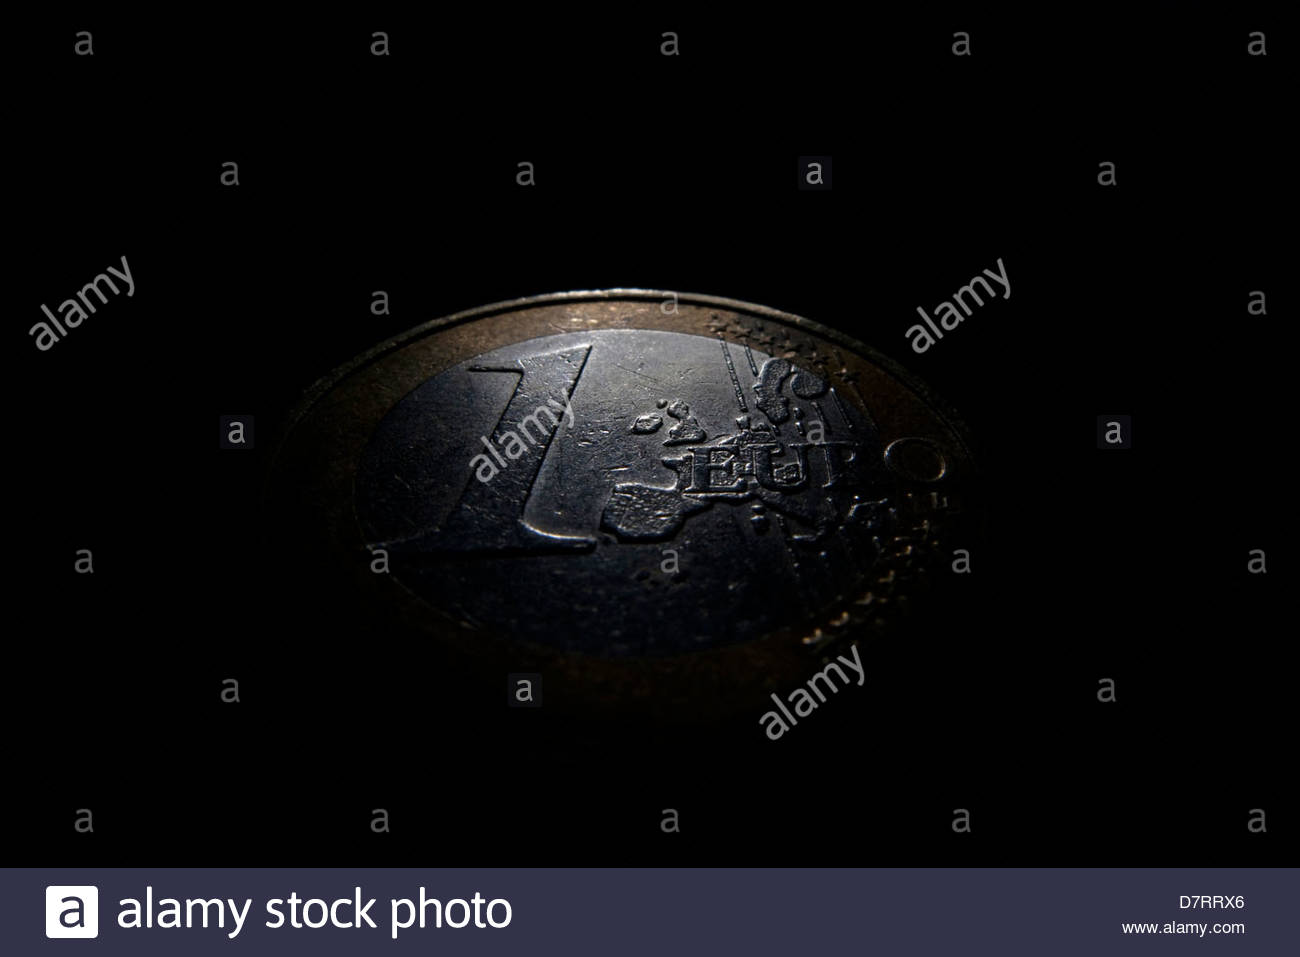 Close-up of one euro coin - Stock Image